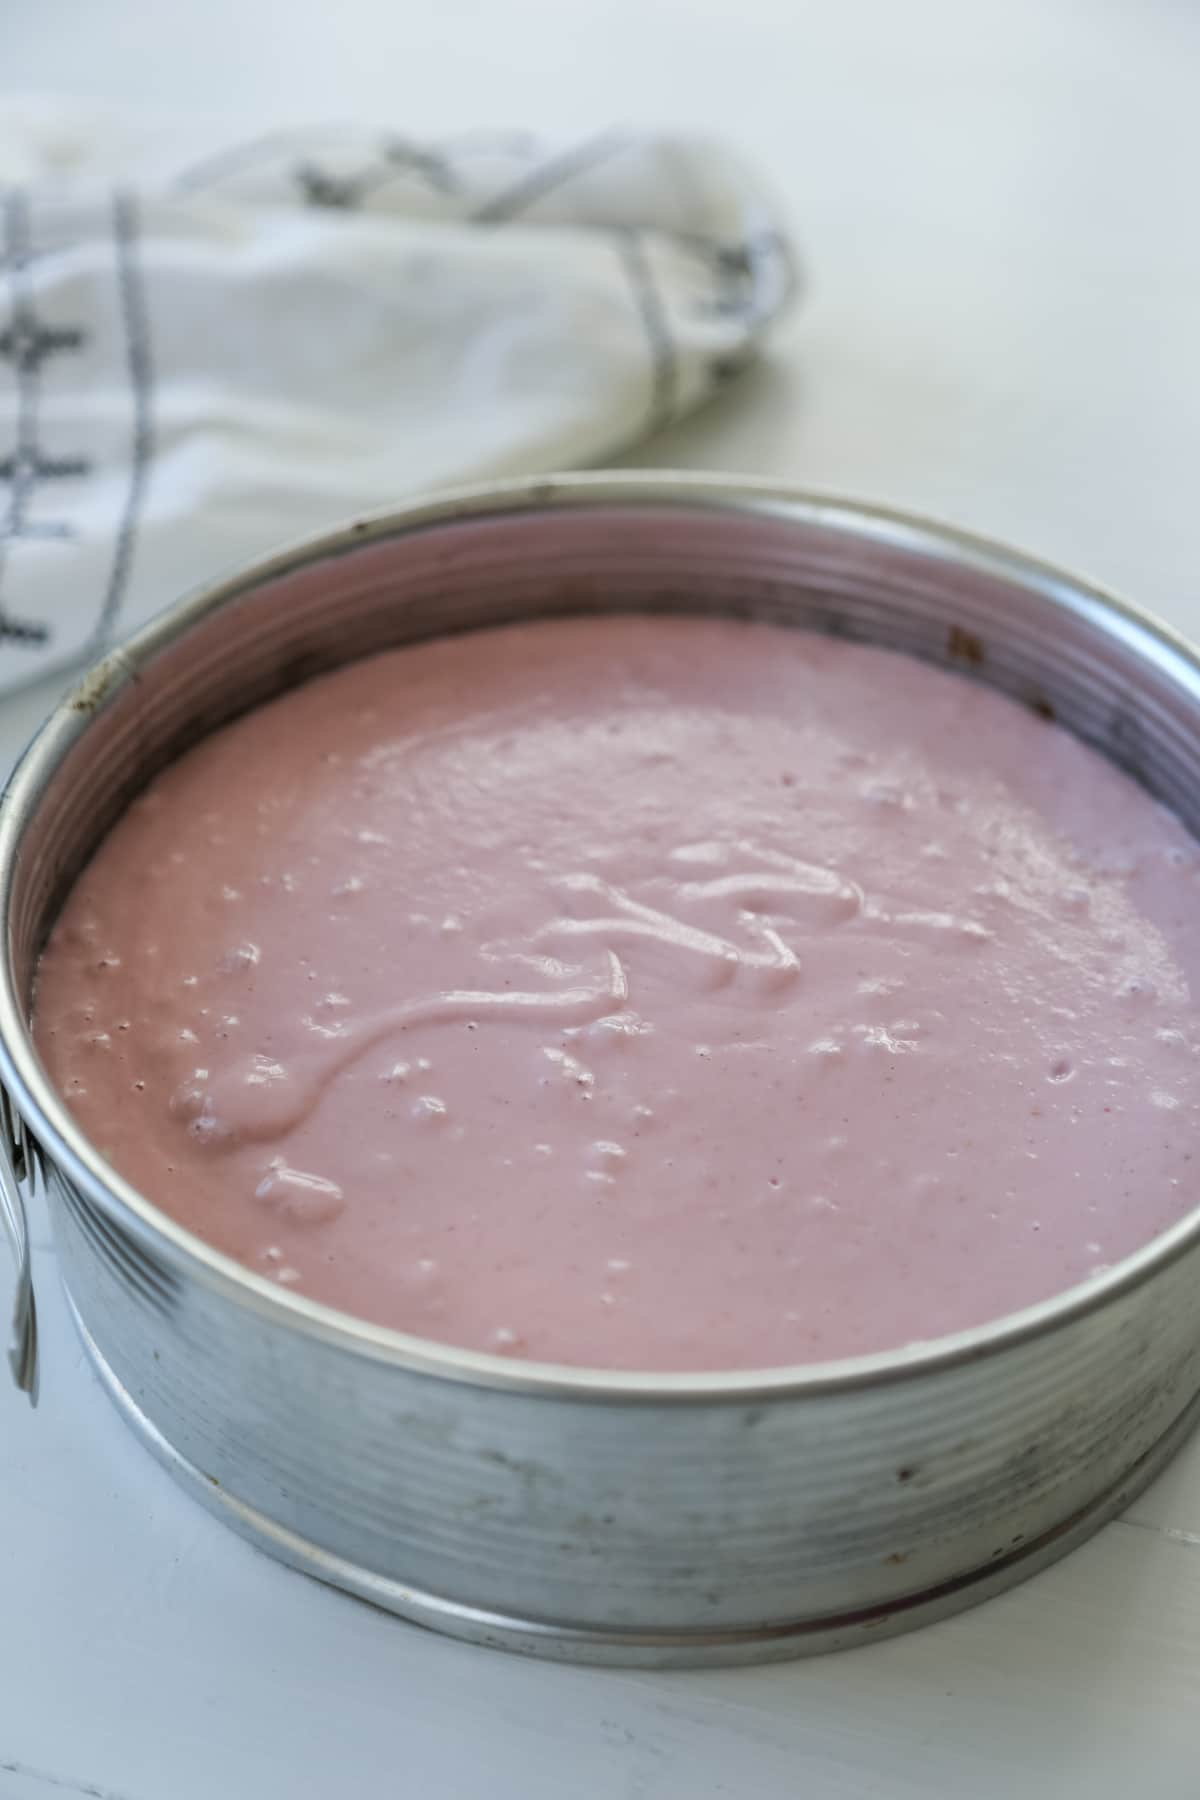 Raspberry cheesecake in a silver springform pan.